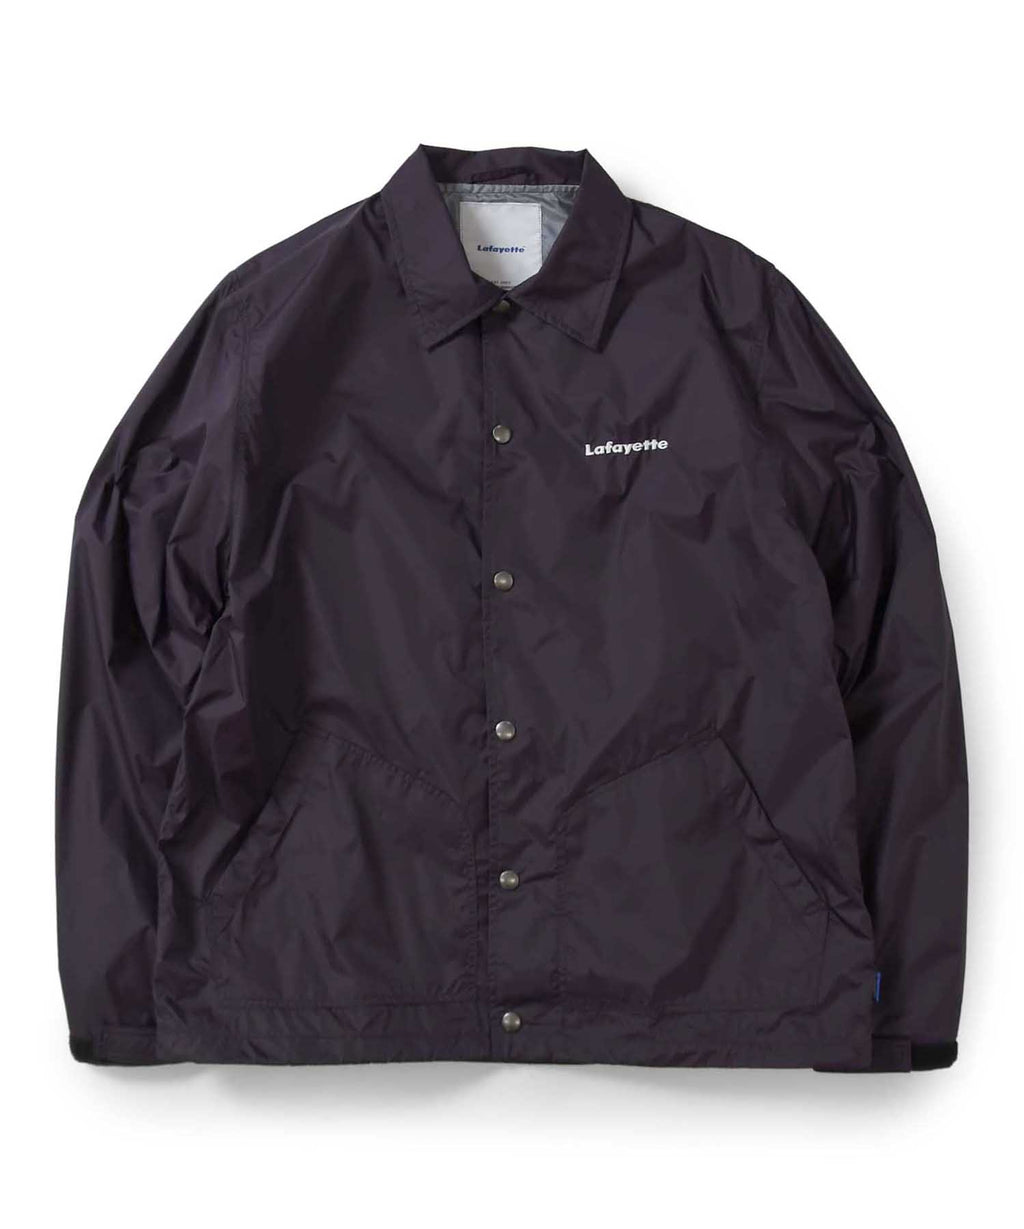 Lafayette BASIC COACH JACKET LS201003 PURPLE